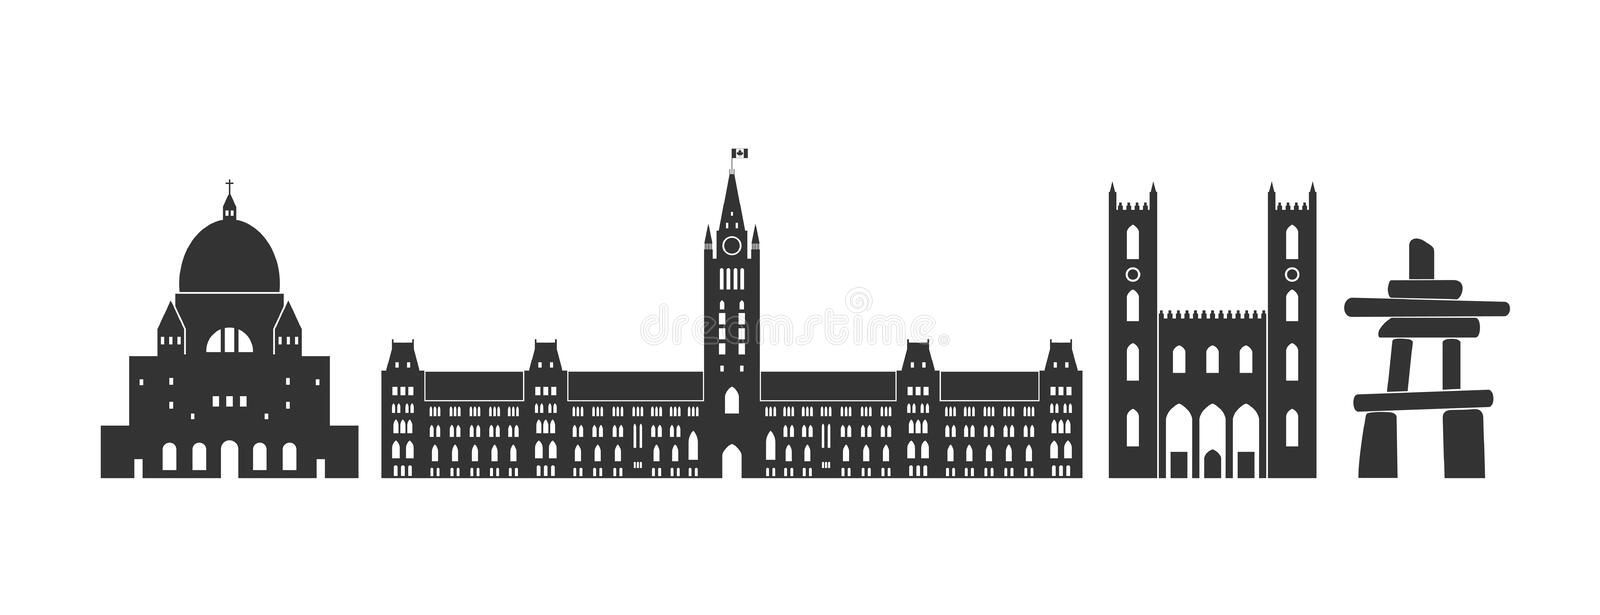 Canada logo. Isolated Canadian architecture on white background. EPS 10. Vector illustration royalty free illustration